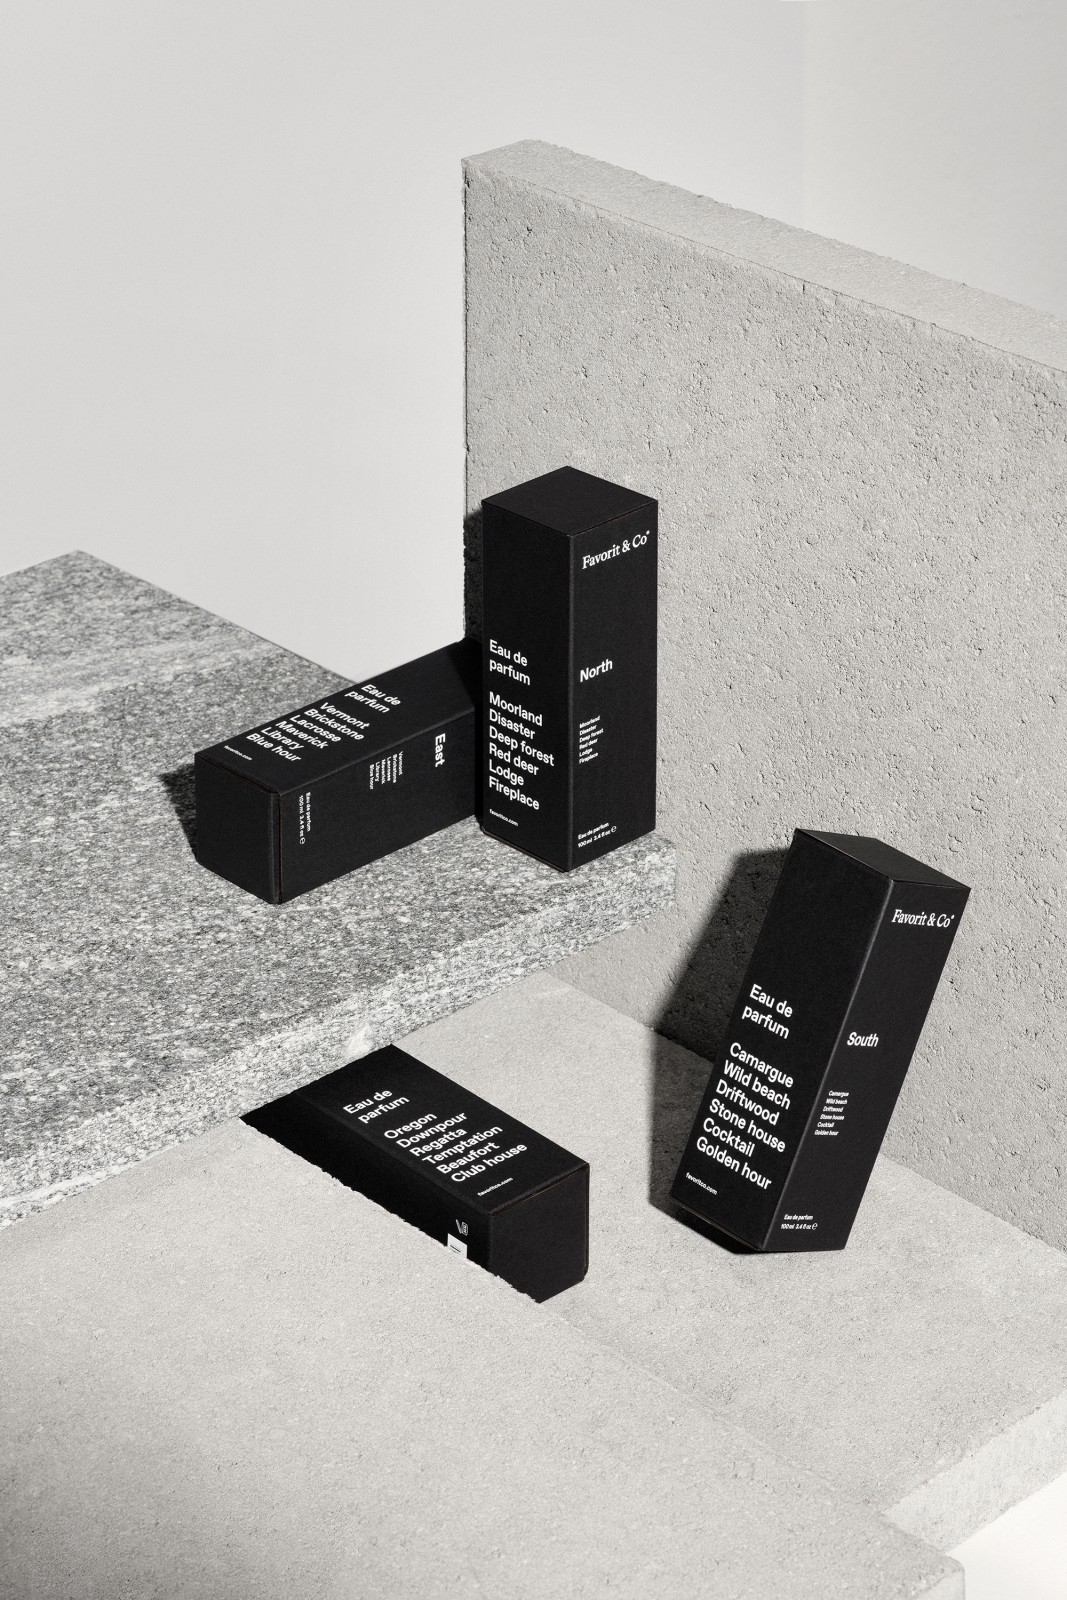 Packaging Design For Favorit Co S Handmade Collection Of Eau De Parfums Room Scents And Cosmetics Laptrinhx